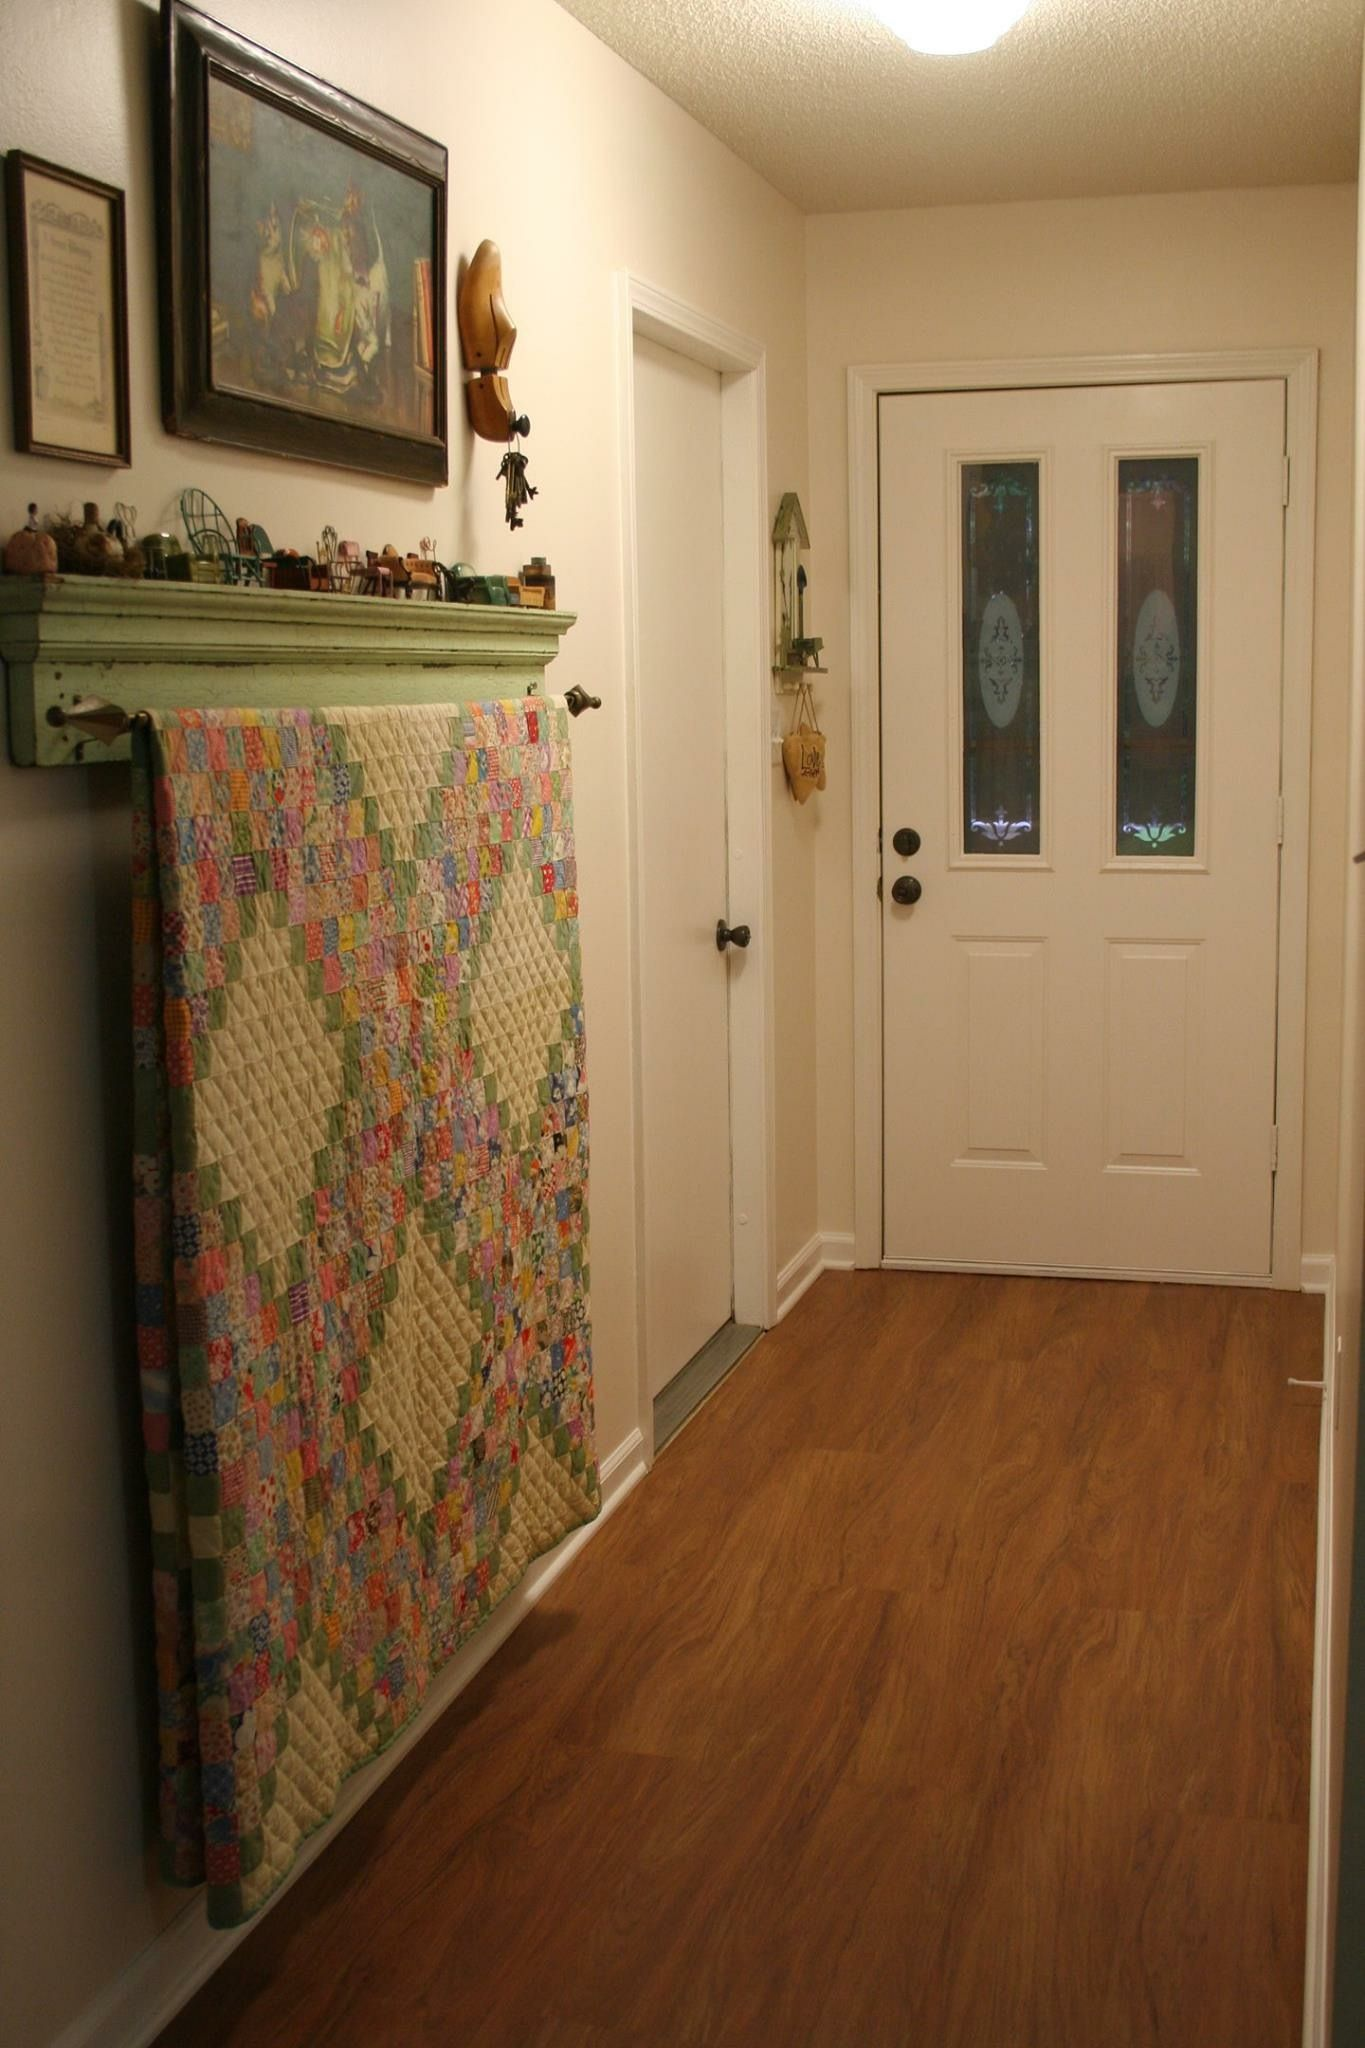 I Like The Curtain Rod To Hang A Quilt Quilts Decor Quilt